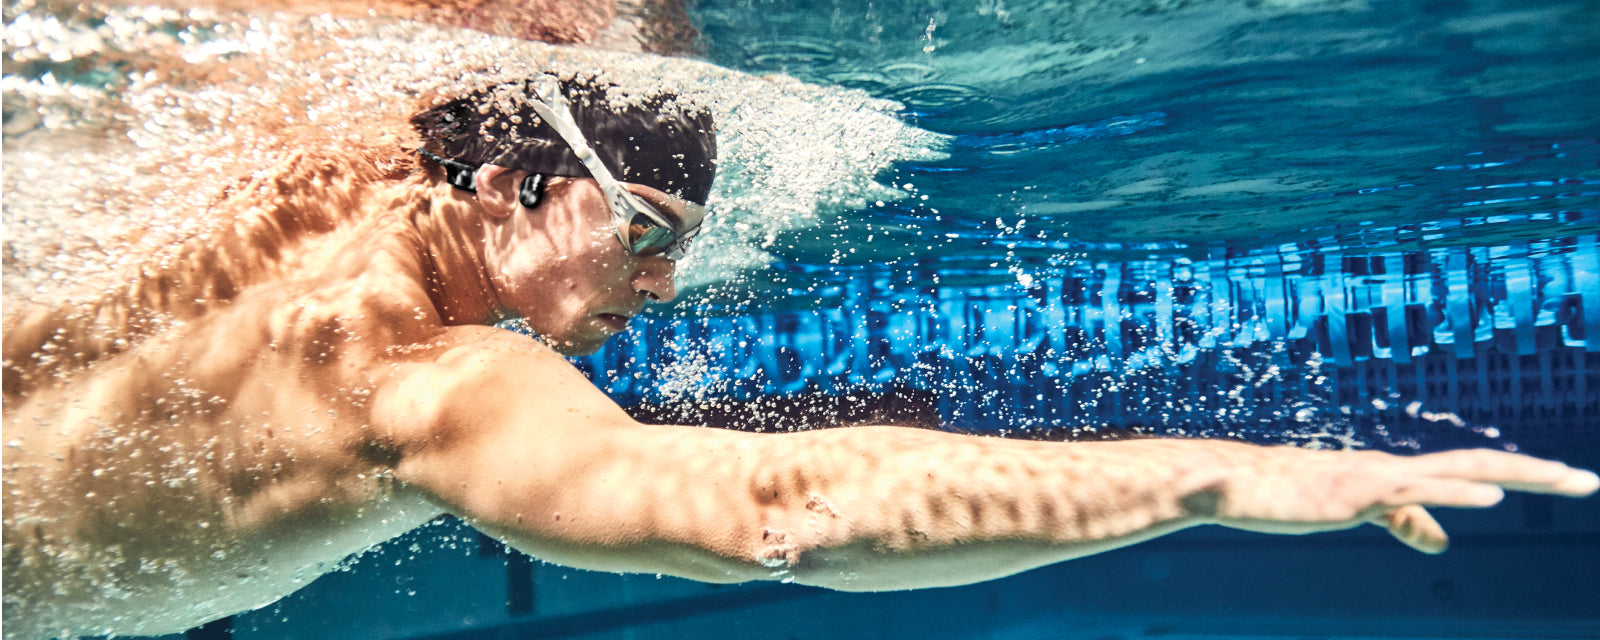 Healthy Foods to Fuel Your Swim